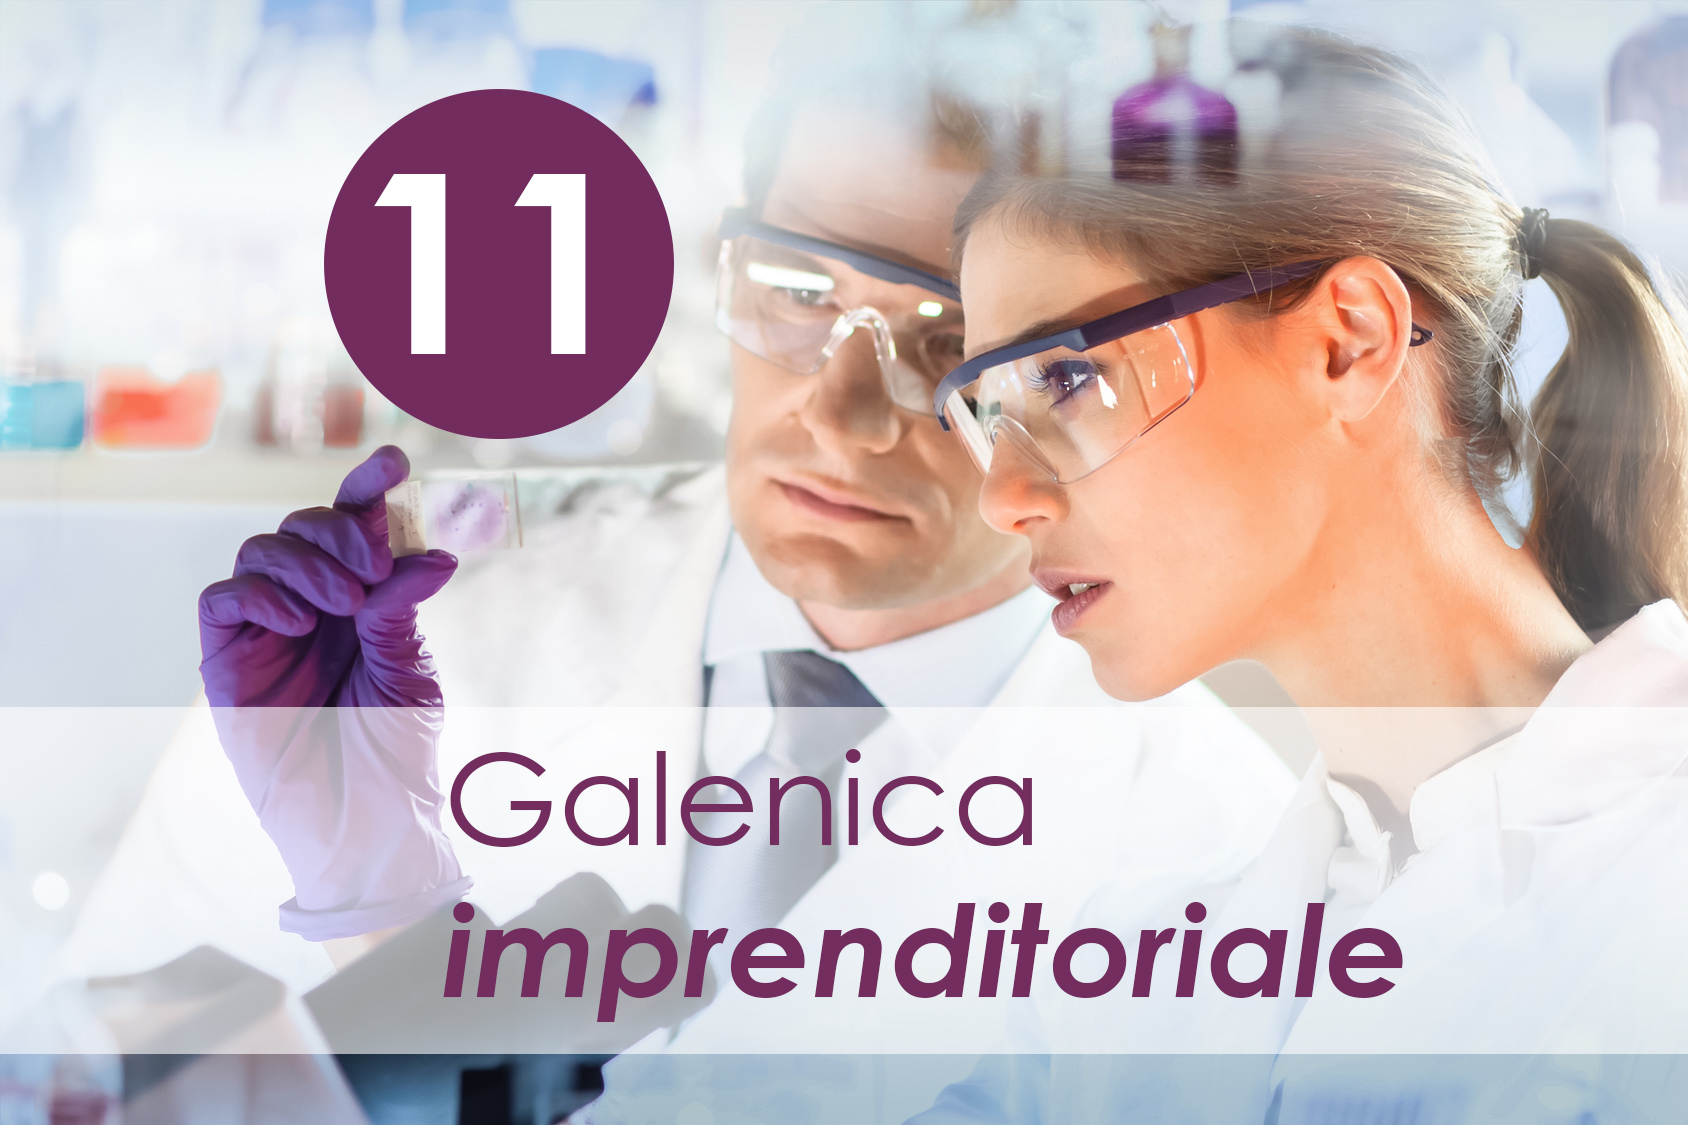 preparati magistrali - galenica imprenditoriale